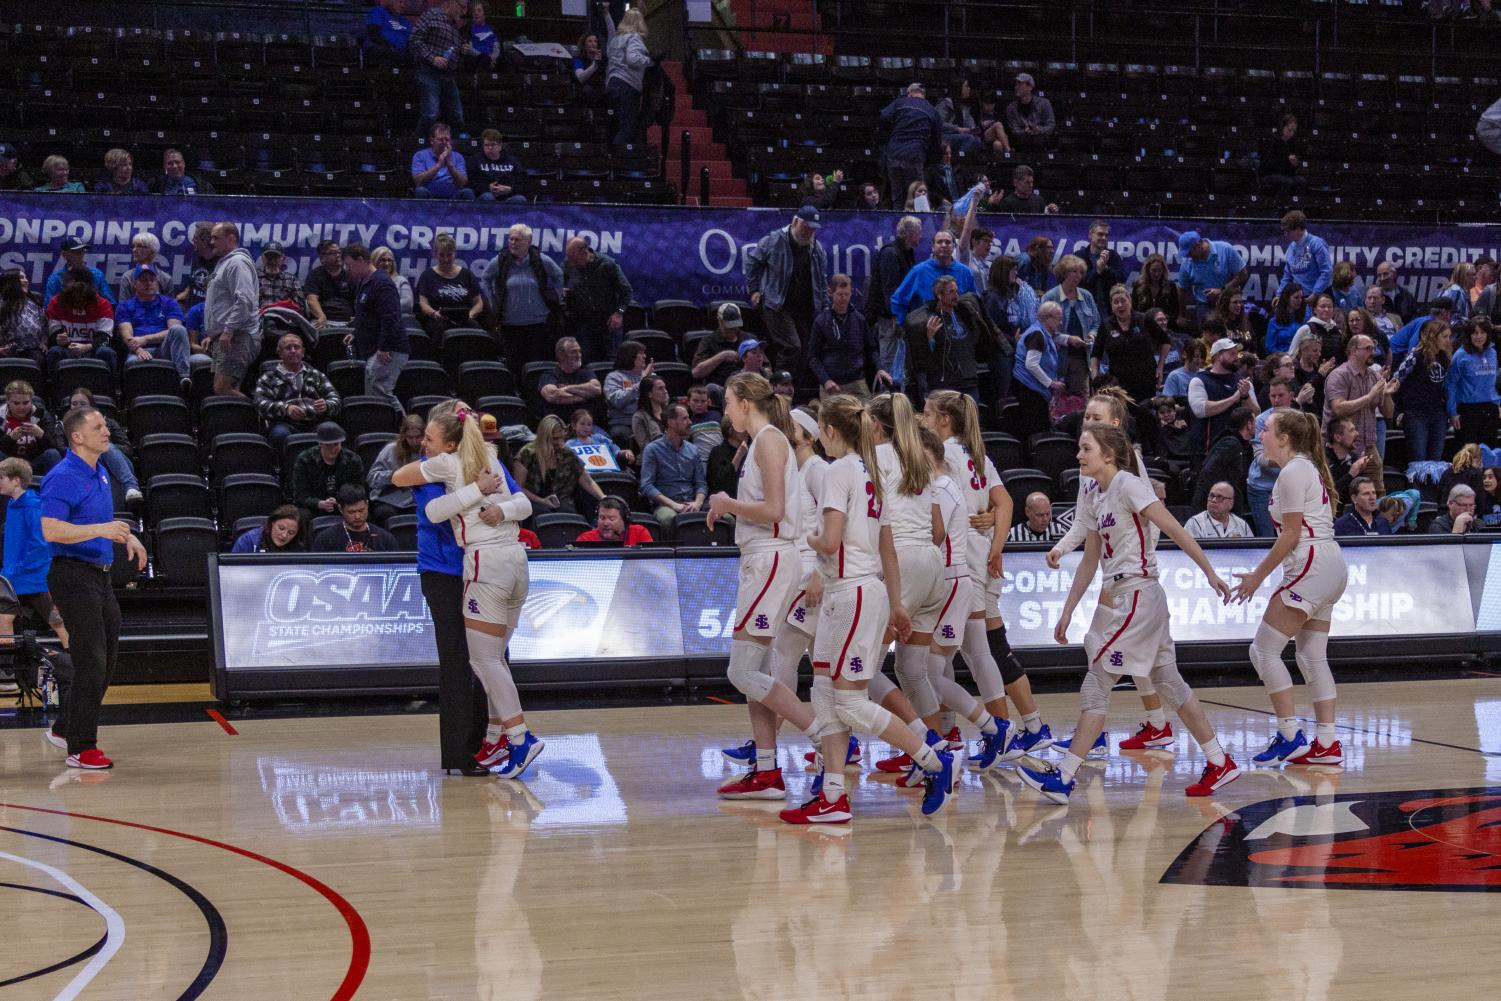 The+%232+varsity+girls+basketball+team+won+their+game+against+%237+Corvallis+with+a+final+score+of+65-46.